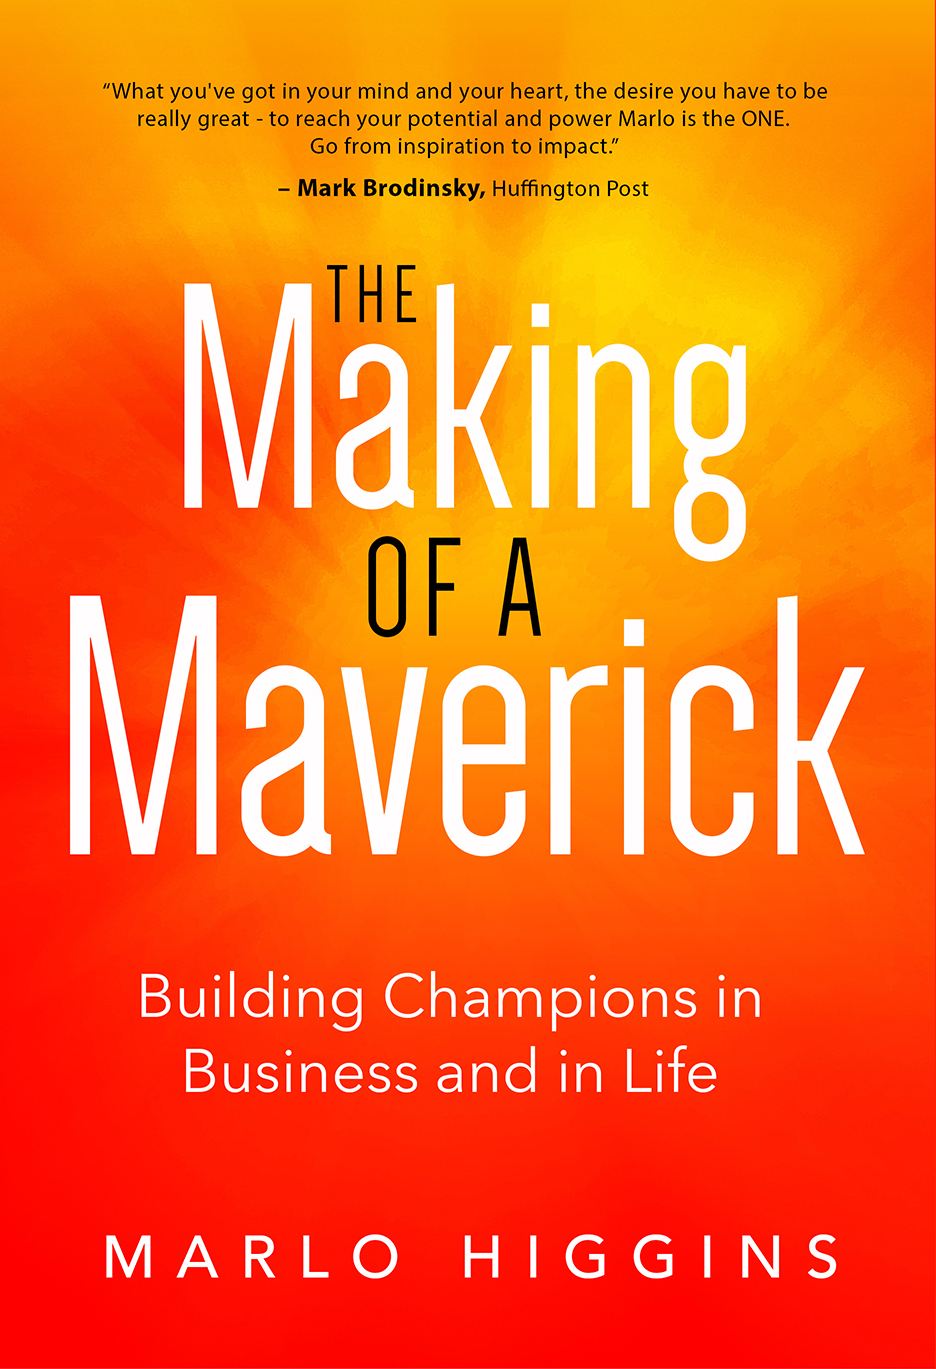 The Making of a Maverick